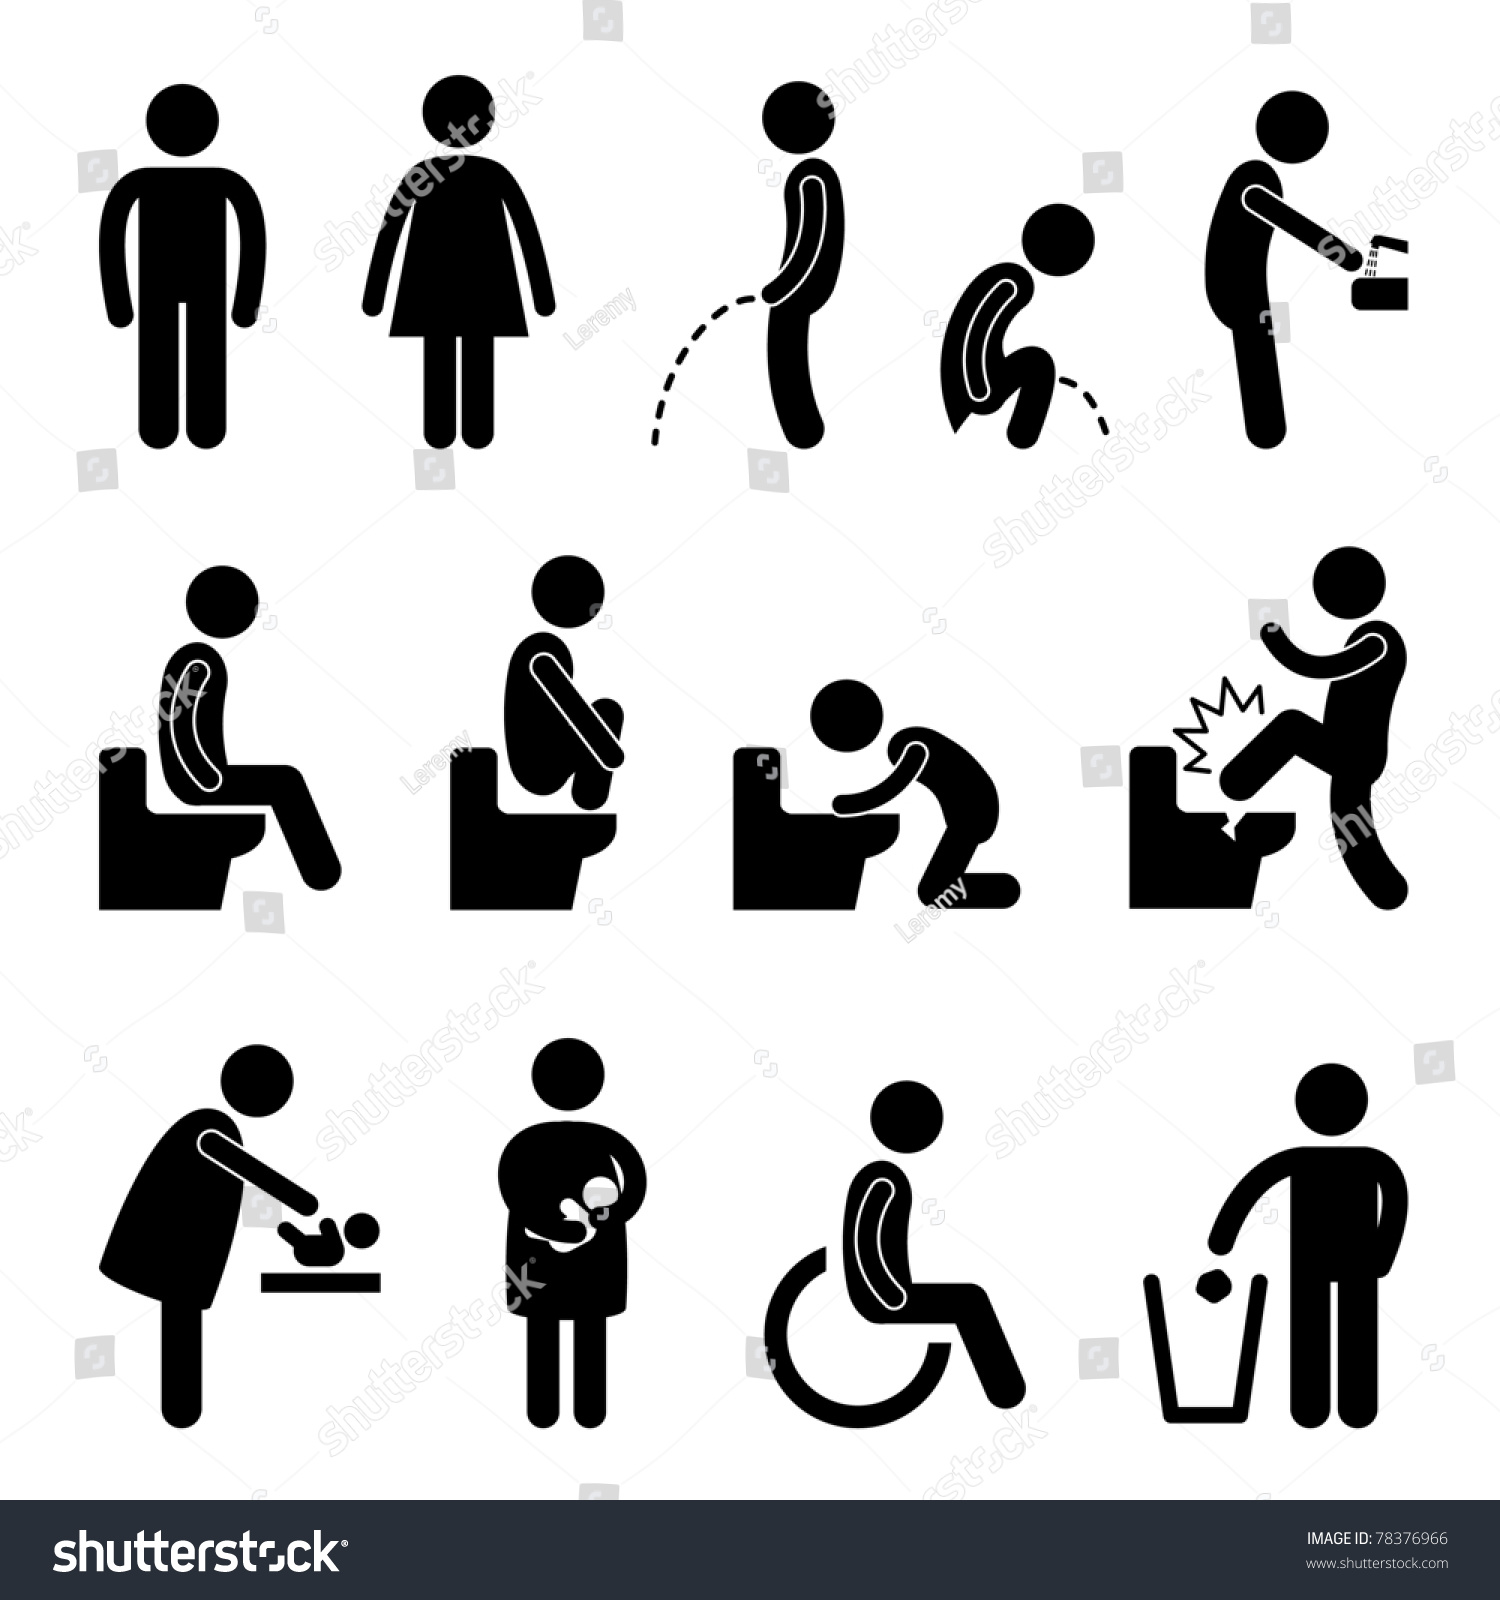 Muurstickers Action Toilet Bathroom Male Female Pregnant Handicap Public Sign